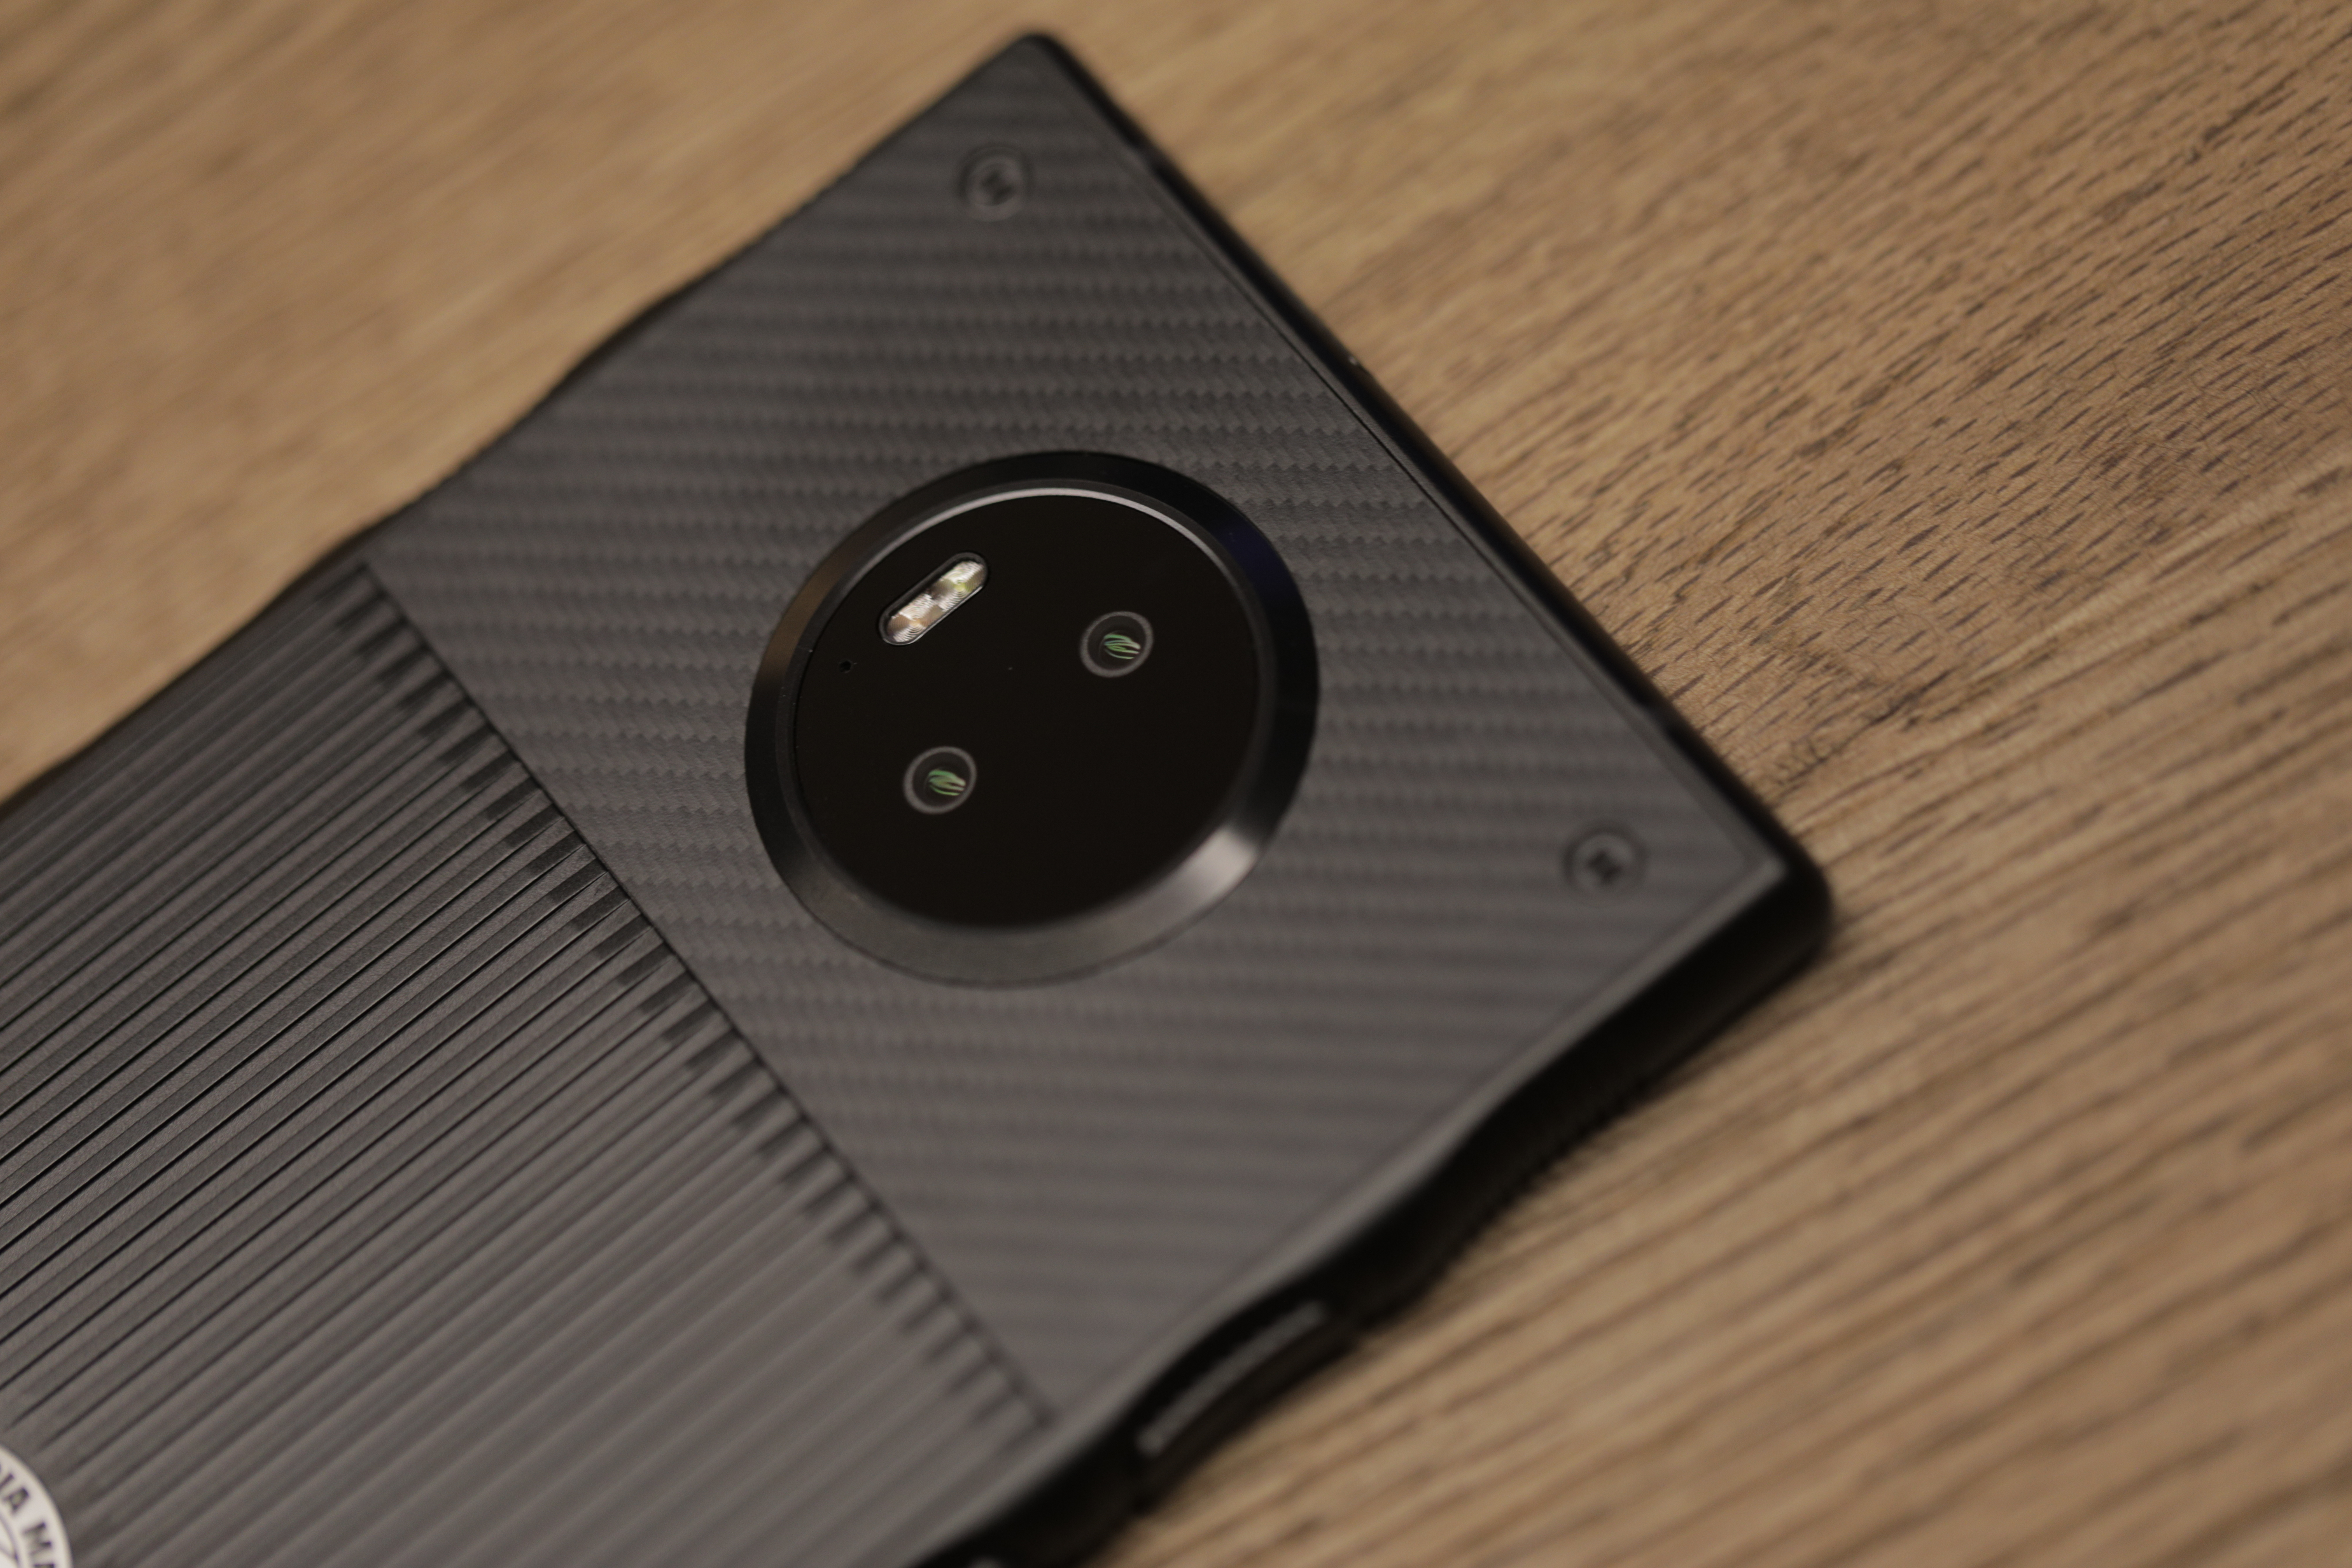 The Red Hydrogen One phone exists — but should it?